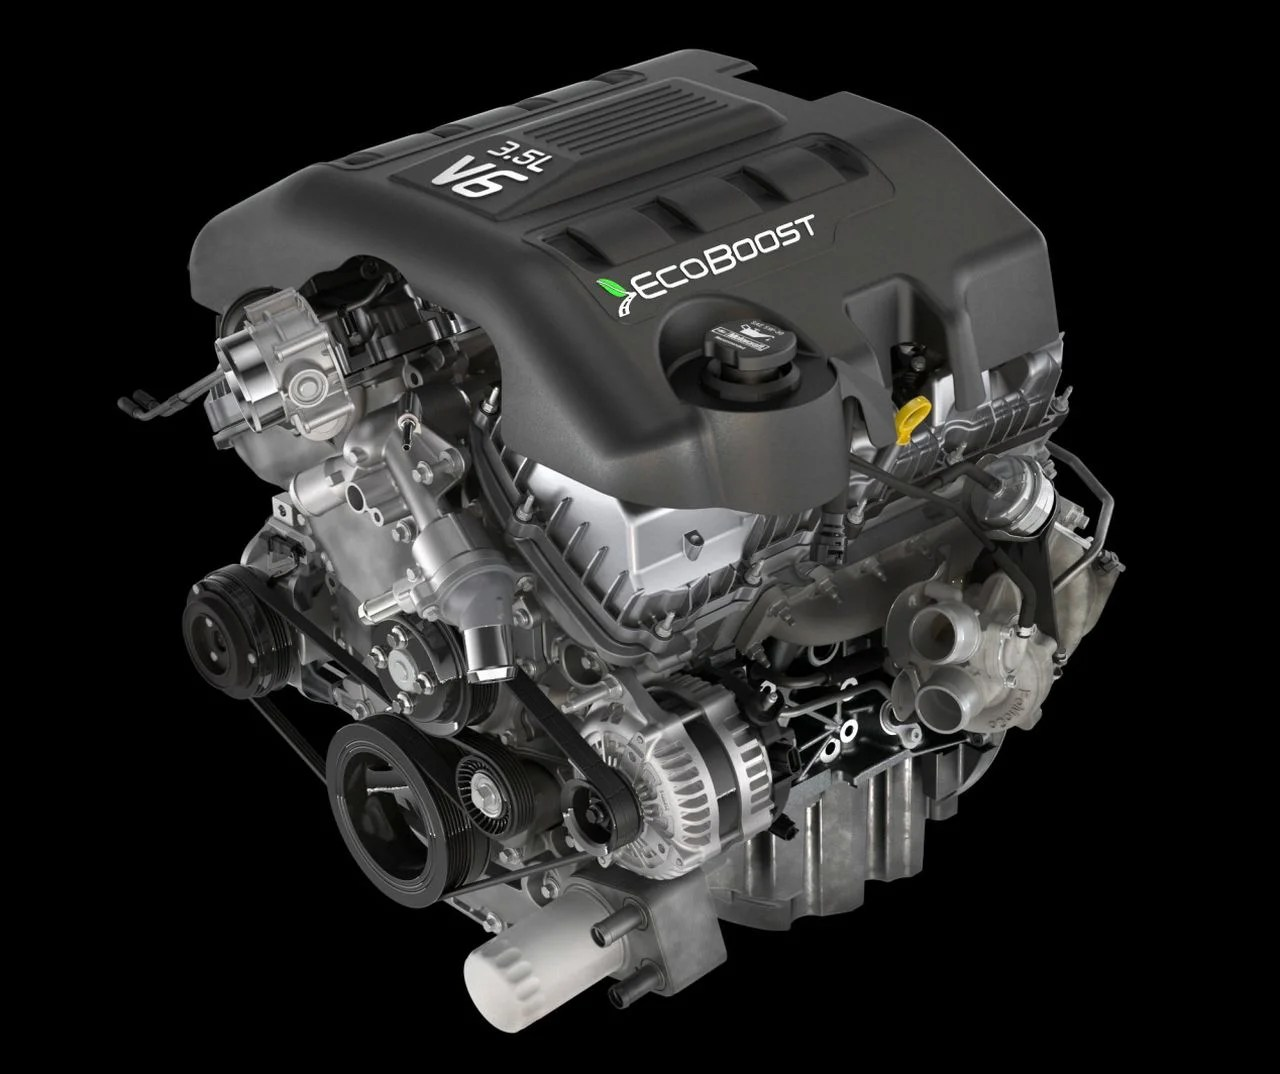 The 10 Best Engines Of The Last 20 Years